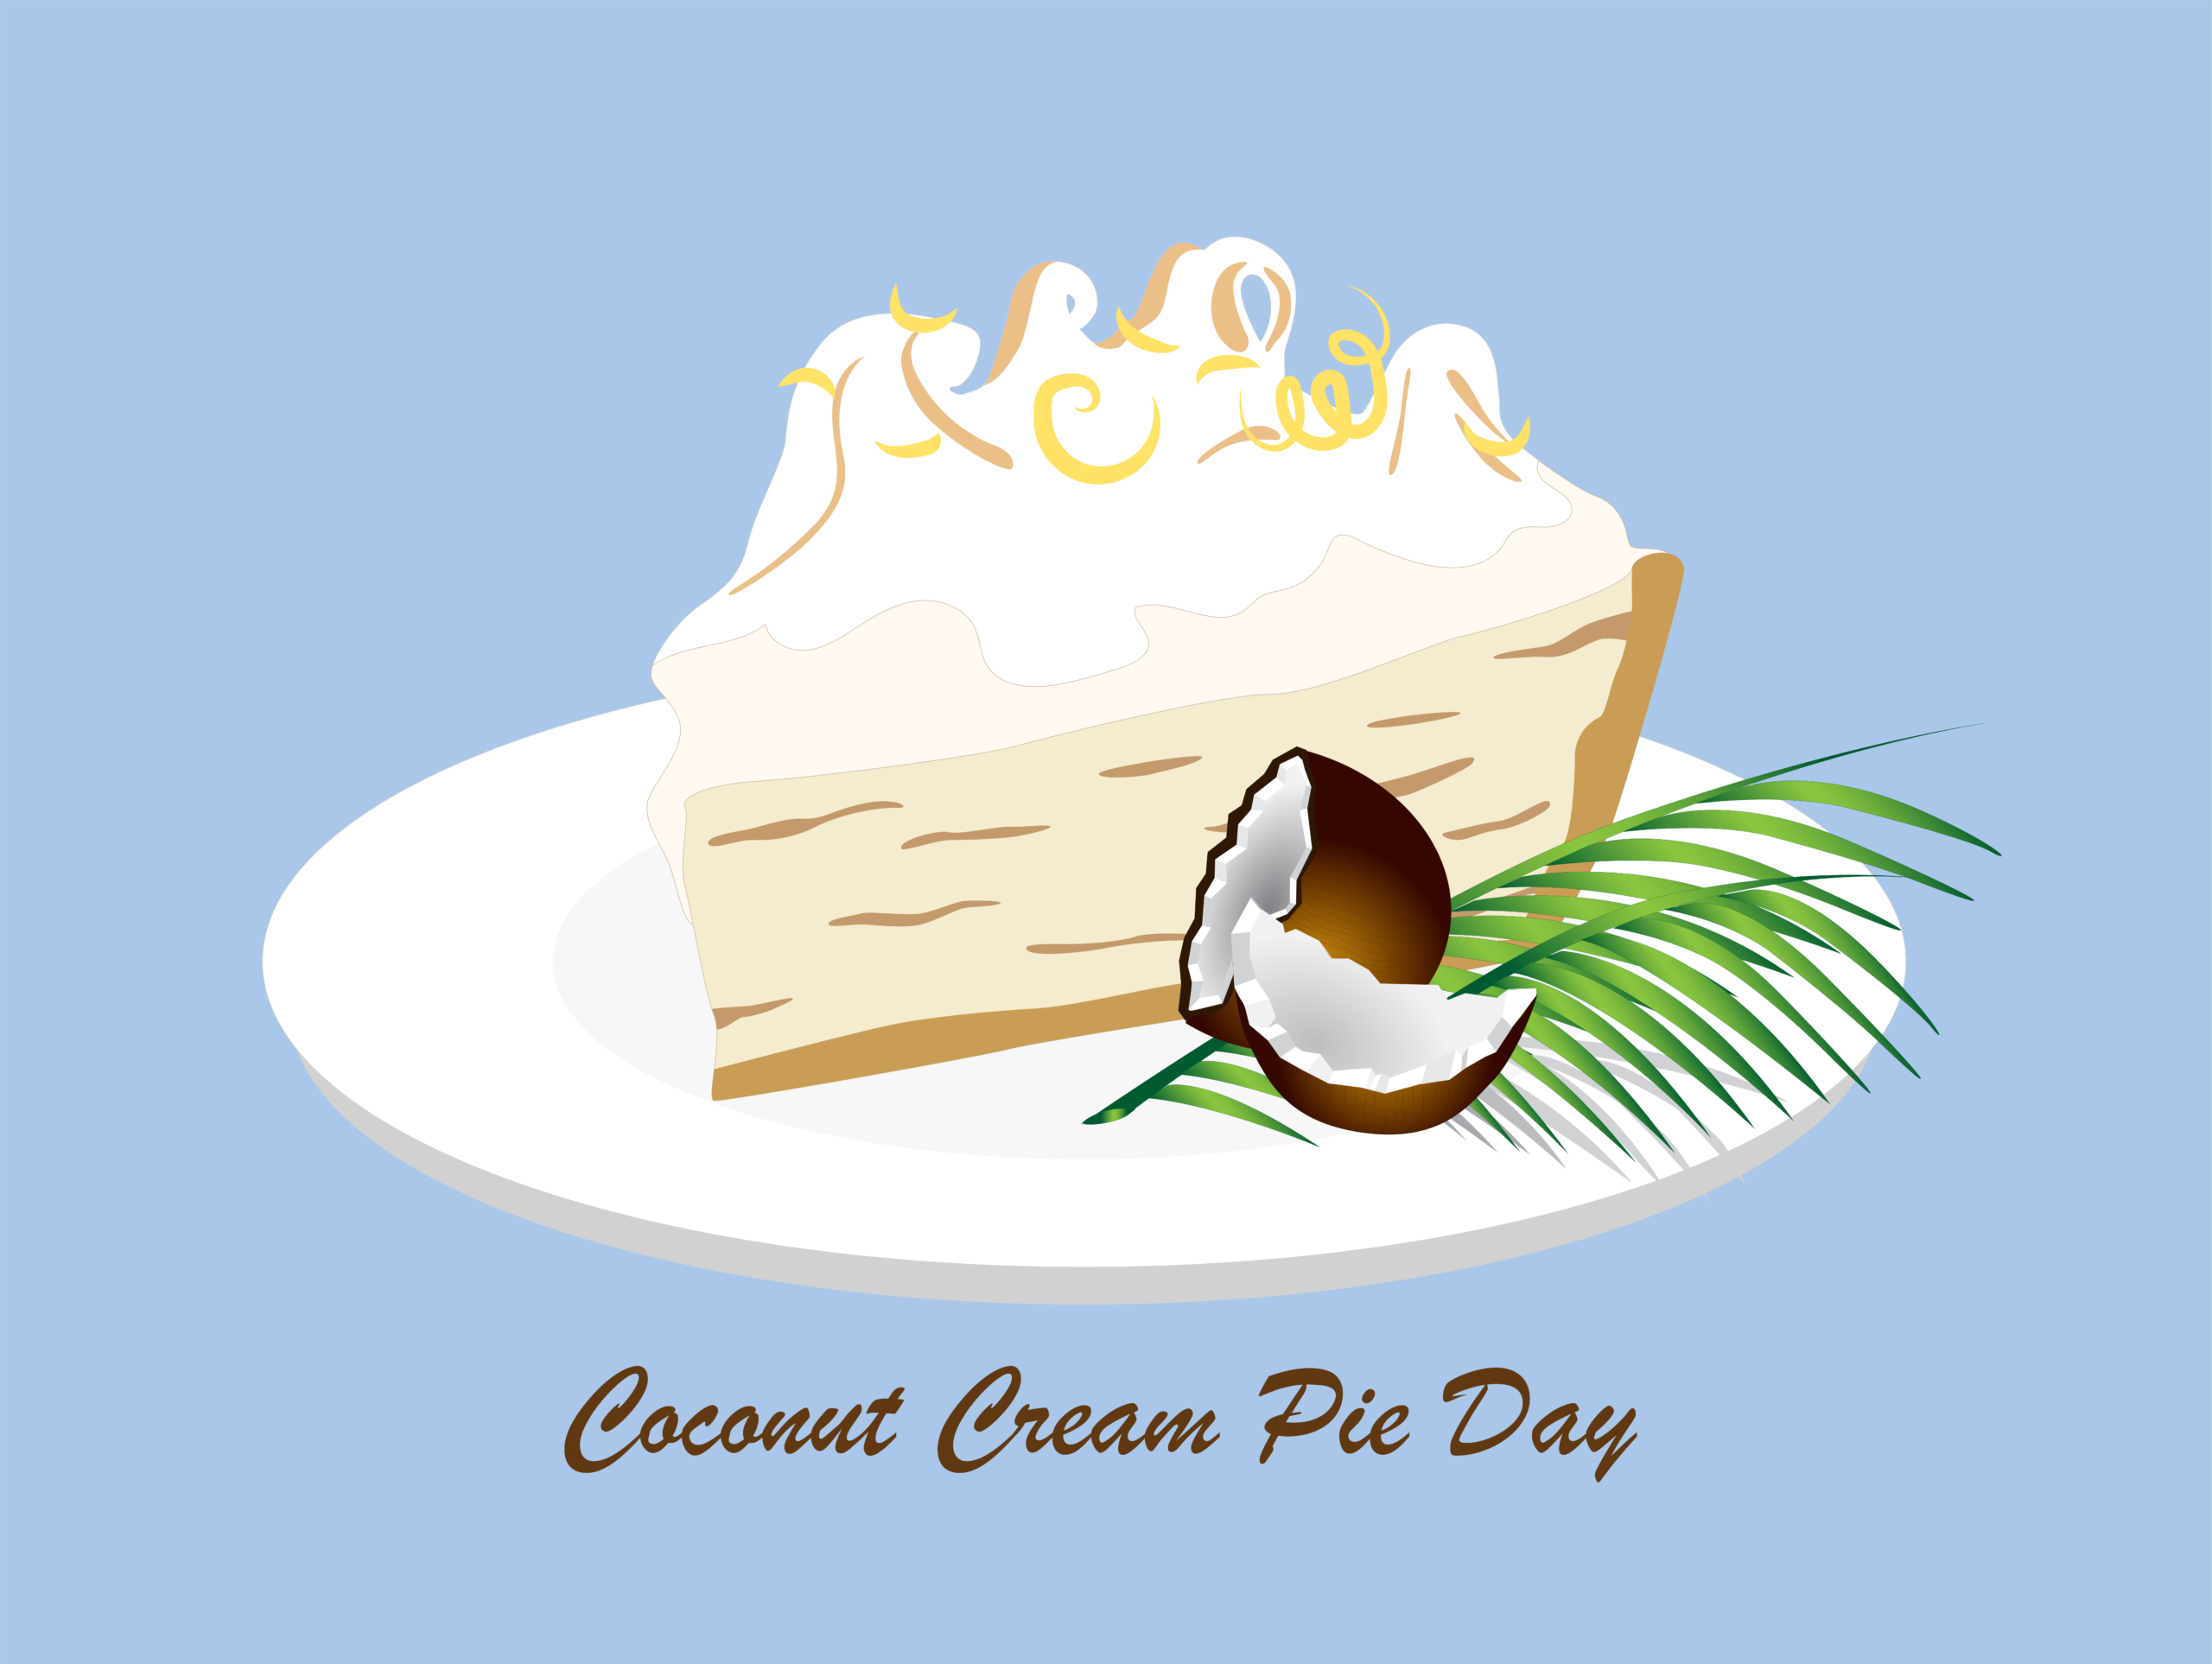 coconut cream pie day